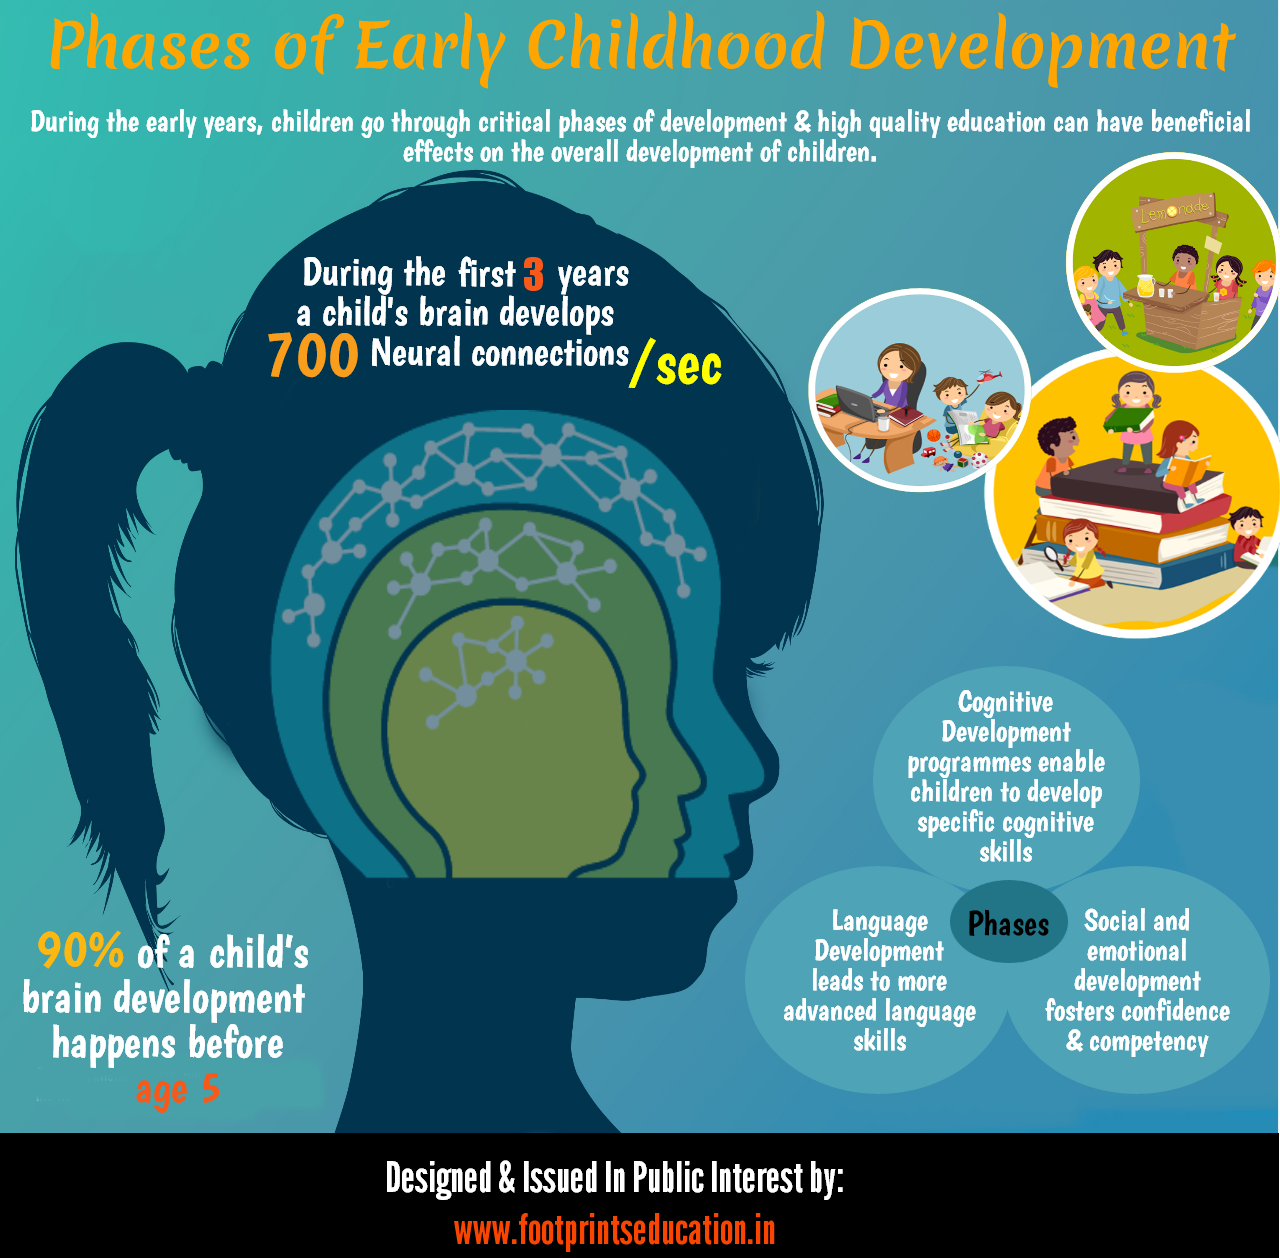 early childhood brain development essay Early childhood brain development - brain development in early childhood the concept of brain development in early childhood has become popular in the field of child and adolescence in recent years, studies have shown how critical the earlier years of life are in terms of brain development in which the child is growing and changing each week.